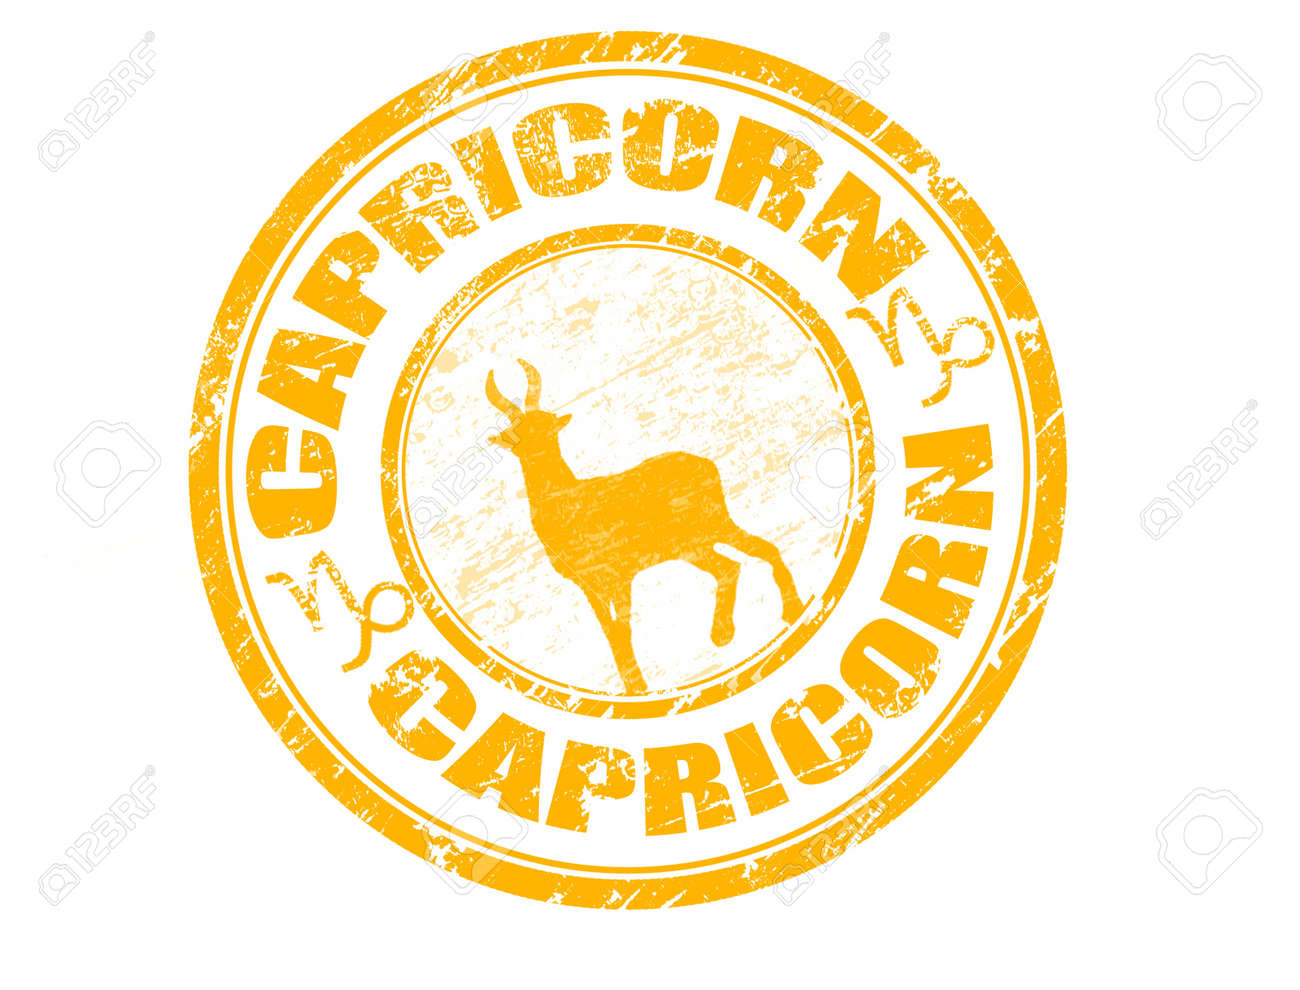 Yellow Grunge Rubber Stamp With Capricorn Shape And The Capricorn